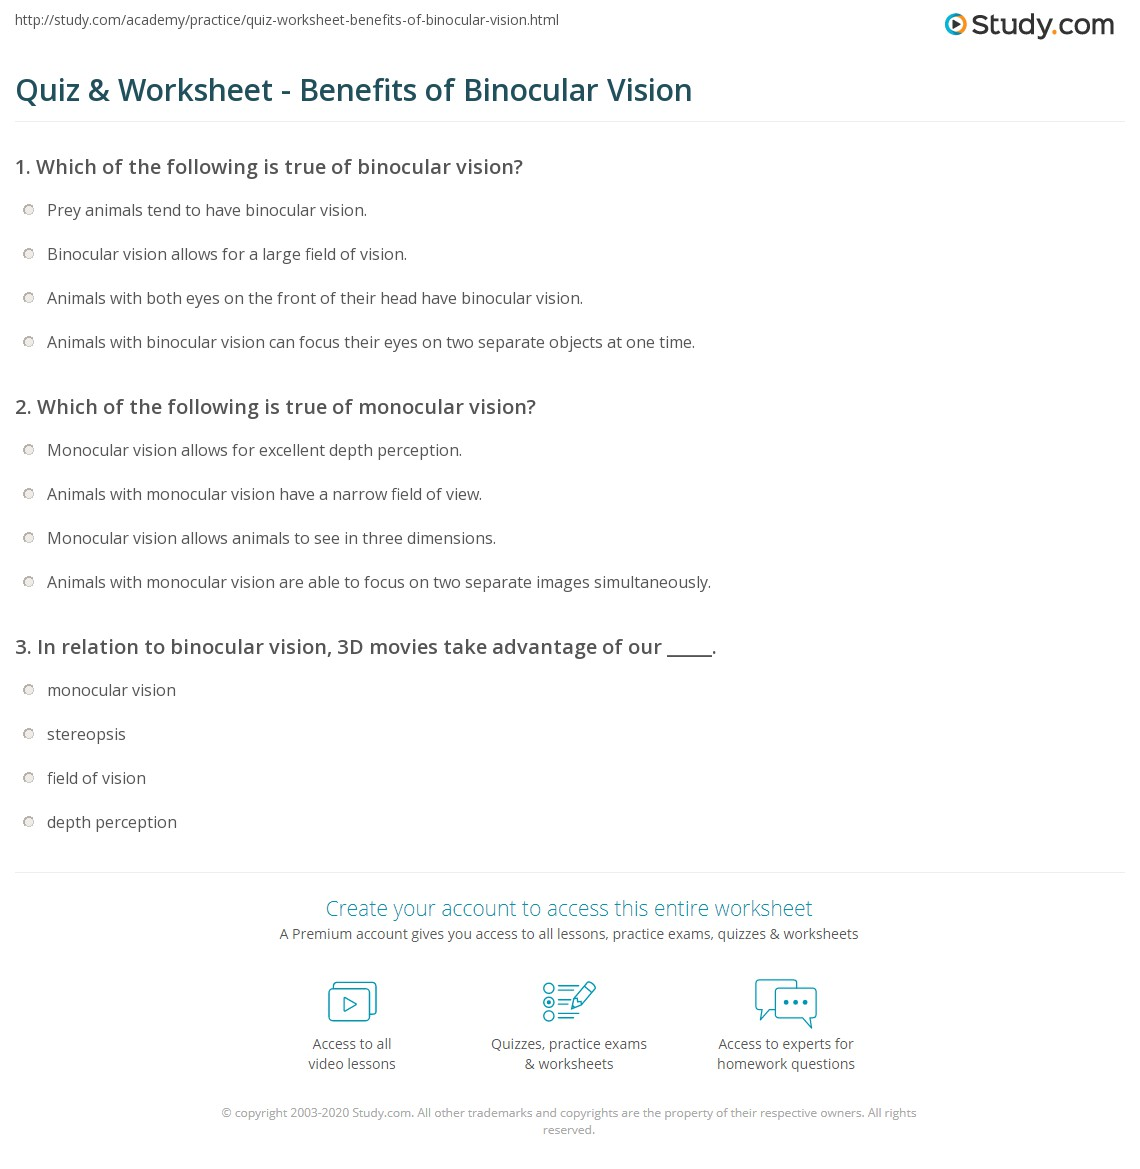 special senses worksheet Termolak – Chapter 8 Special Senses Worksheet Answers